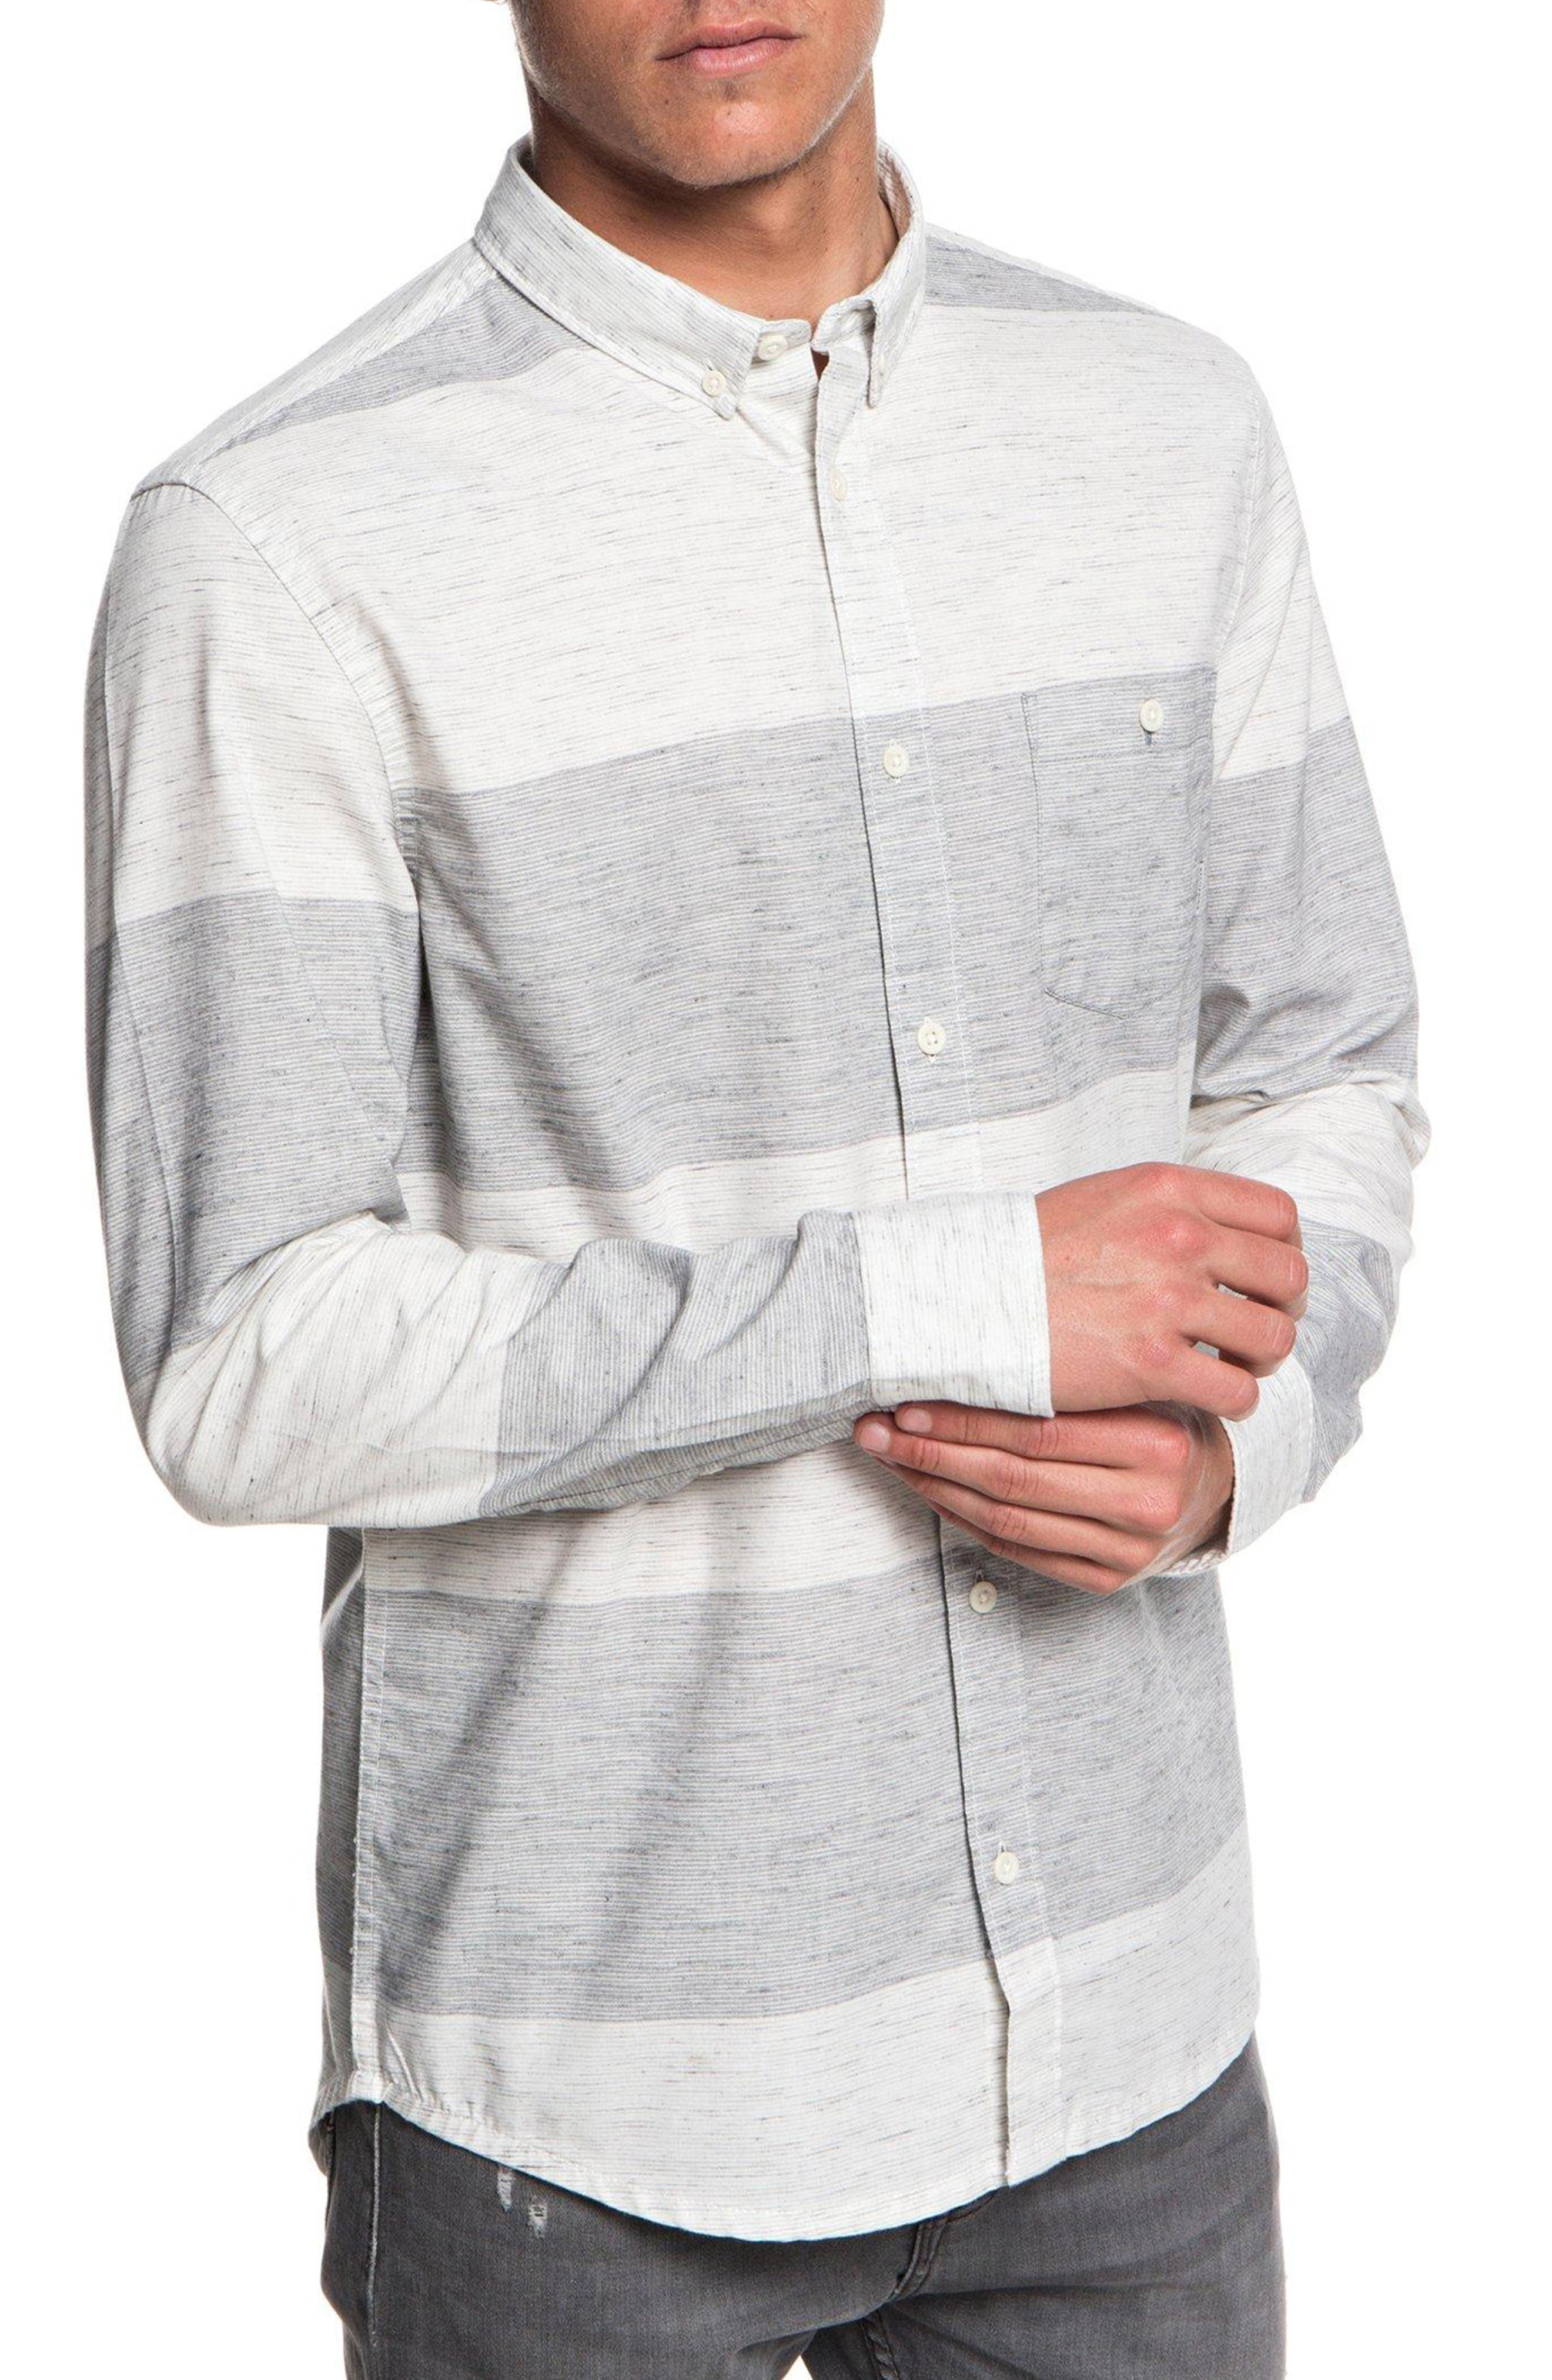 Minoo Valley Striped Shirt,                         Main,                         color, IRON GATE MARBLE NEPPY